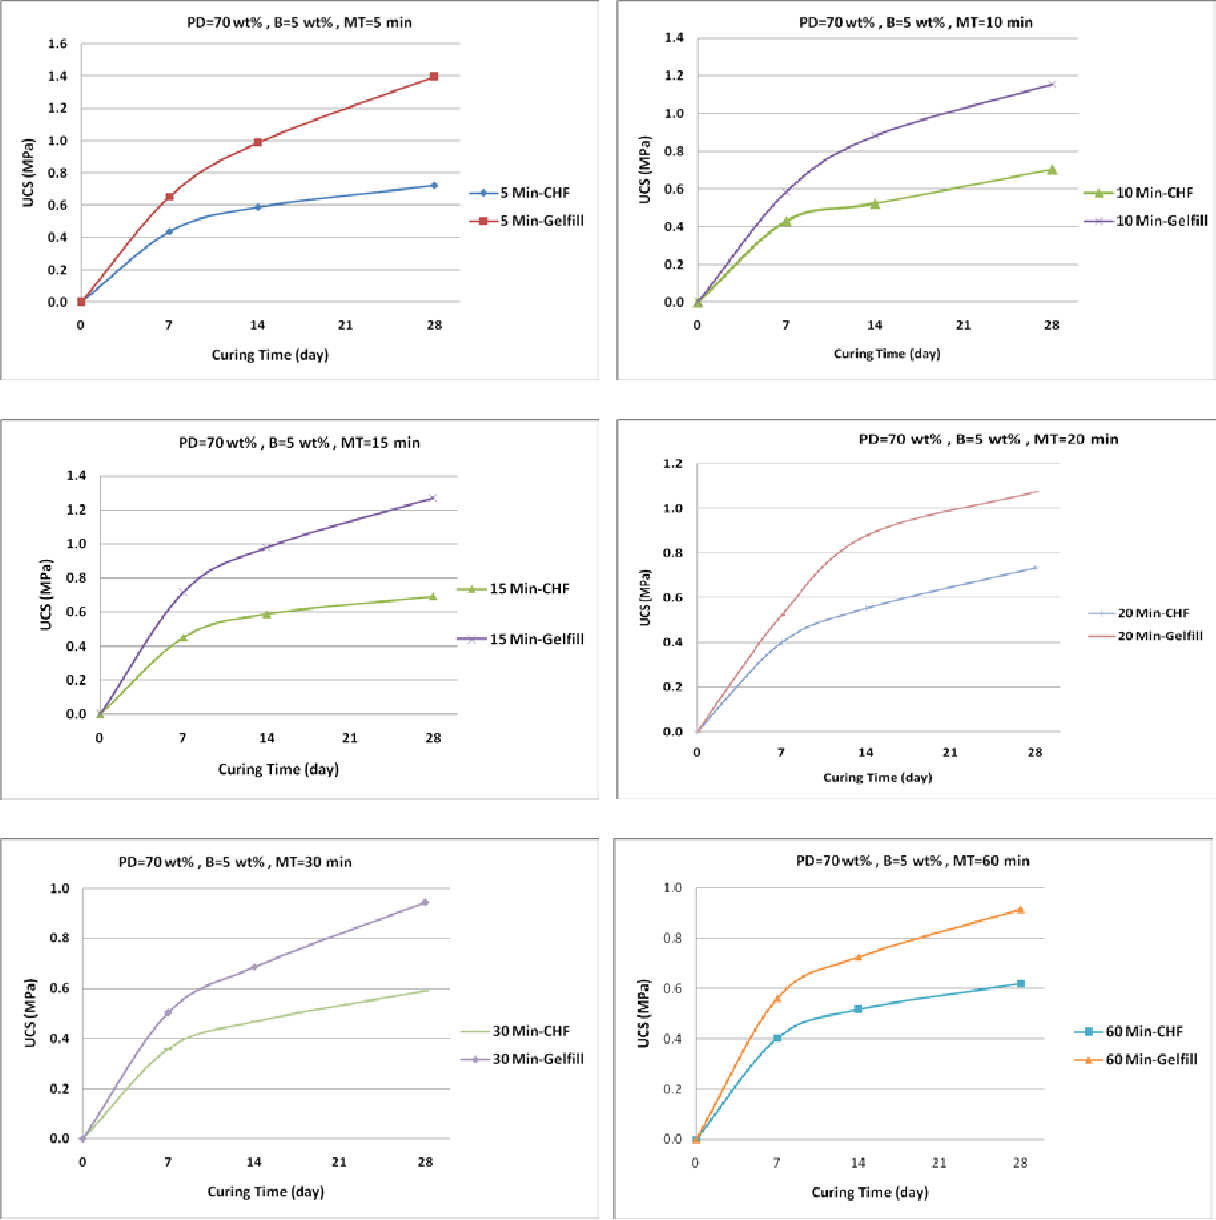 Figure 5: UCS value evolution over 28 days for CHF and Gelfill samples with various mixing time